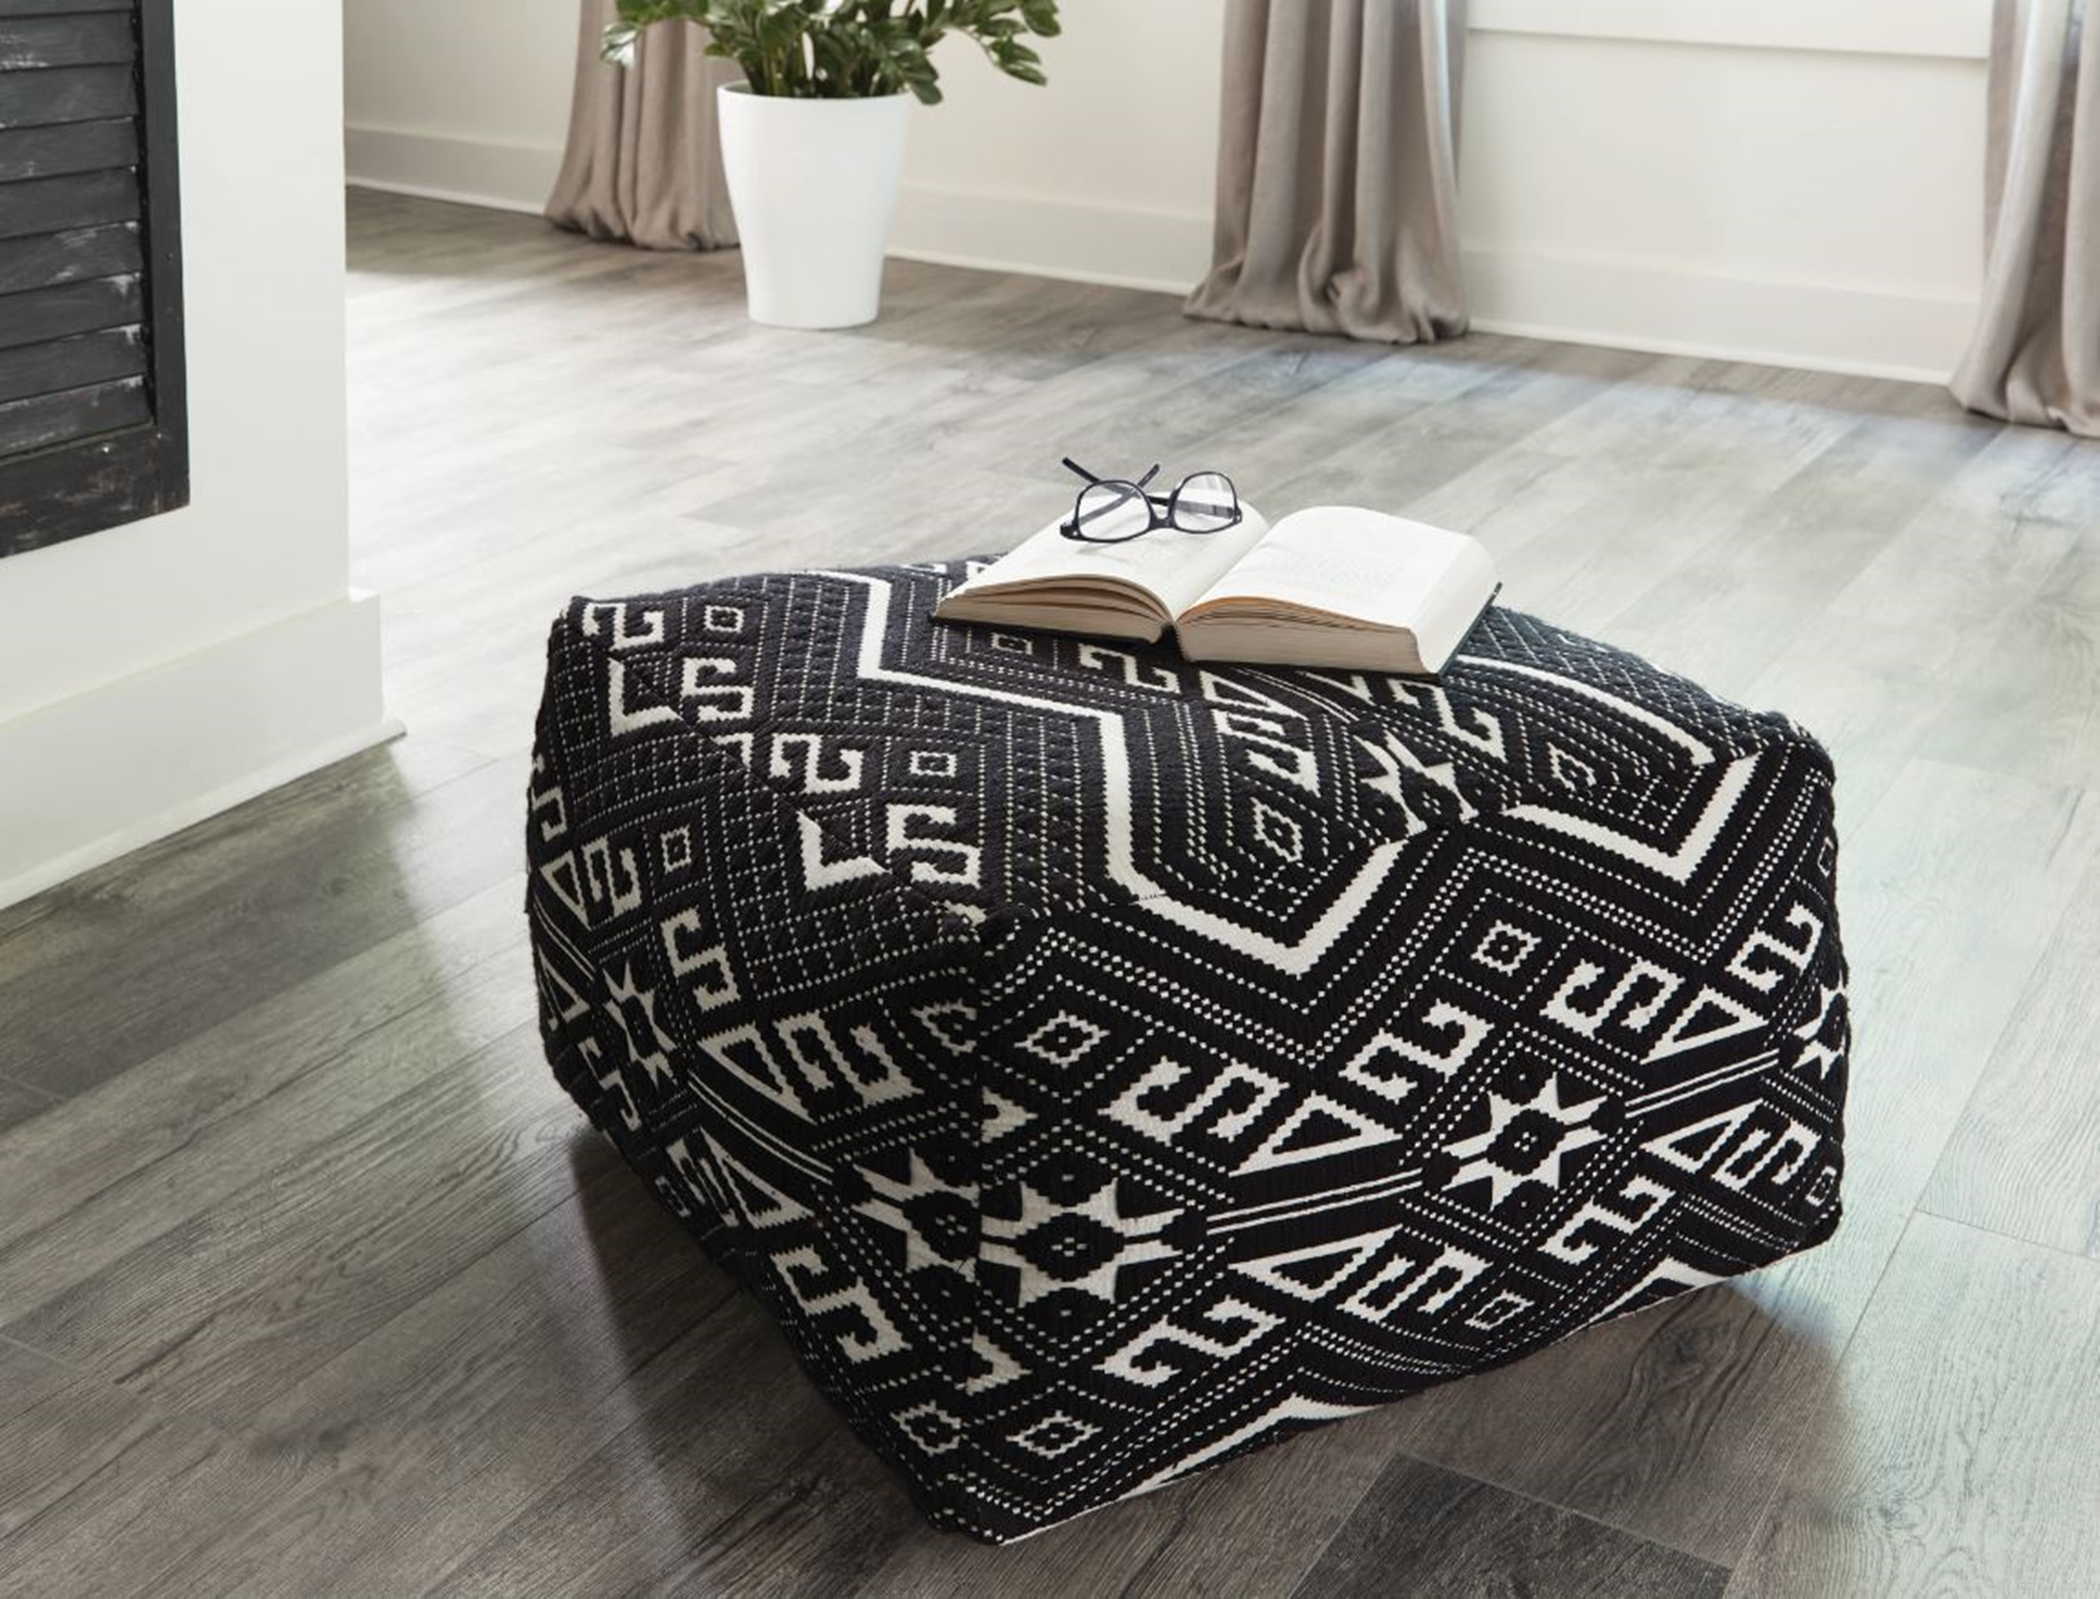 990995 - Accent Stool